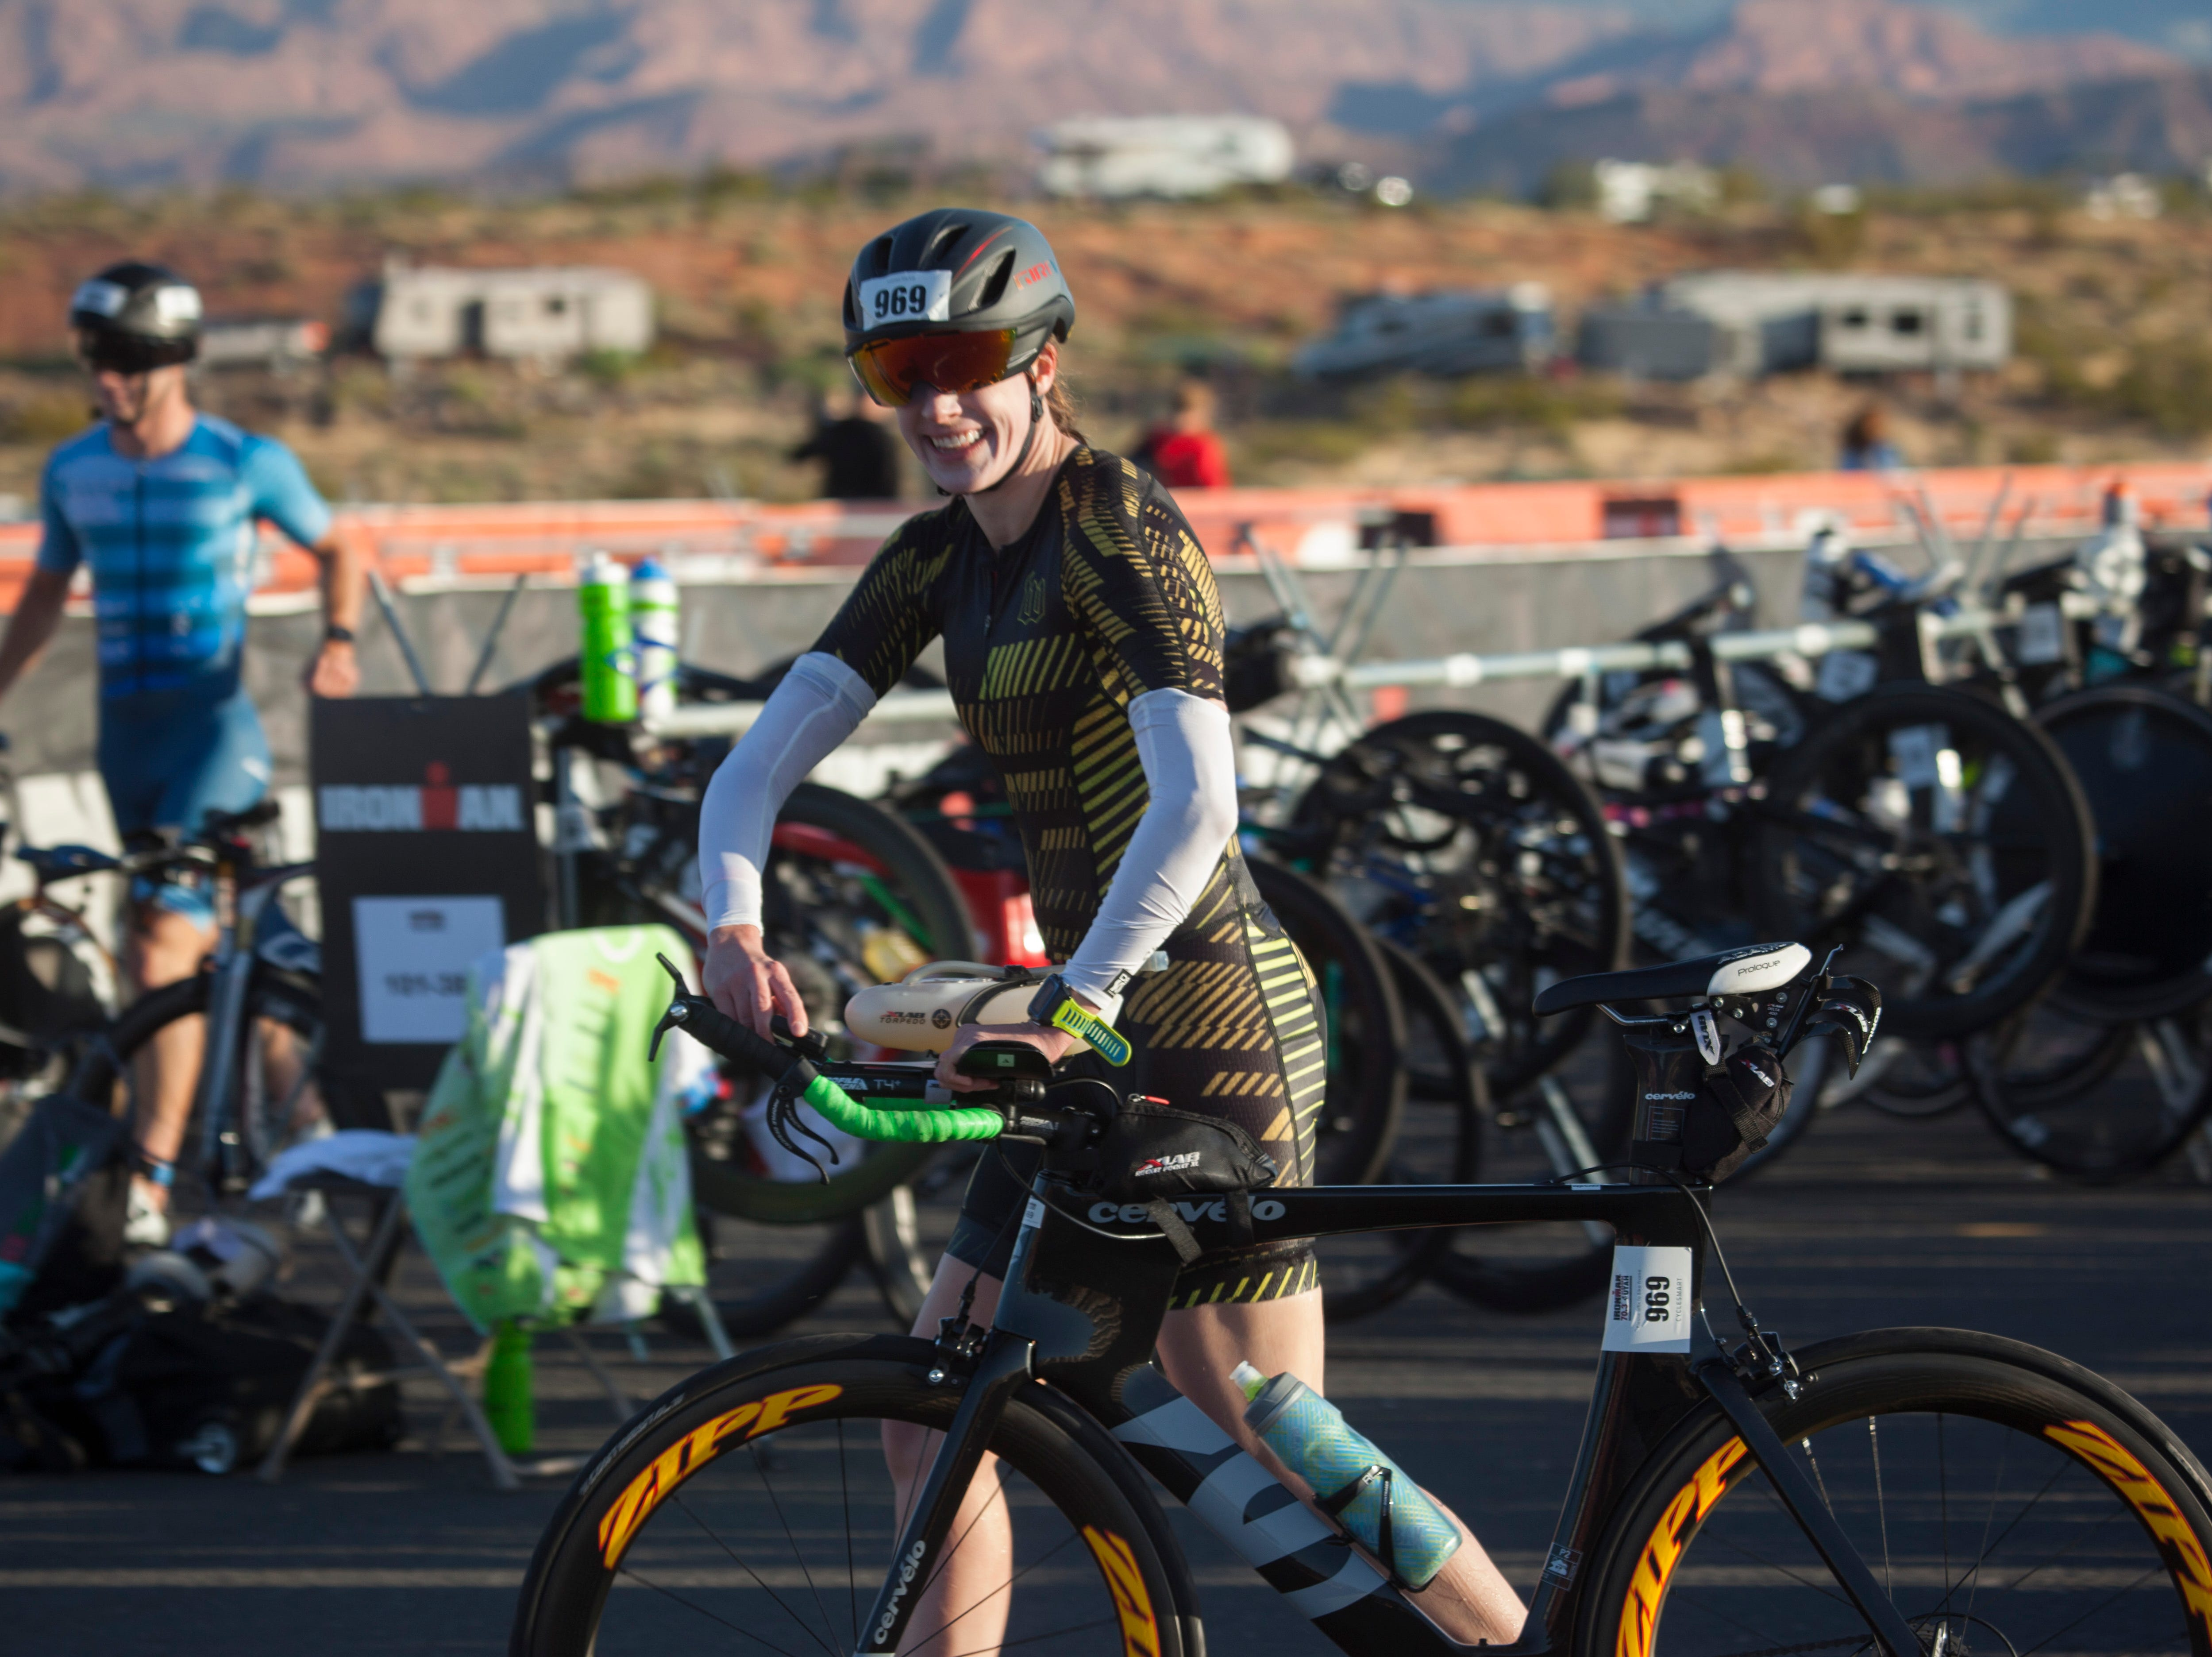 St. George Ironman contestants begin the bike portion of the race Saturday, May 4, 2019.